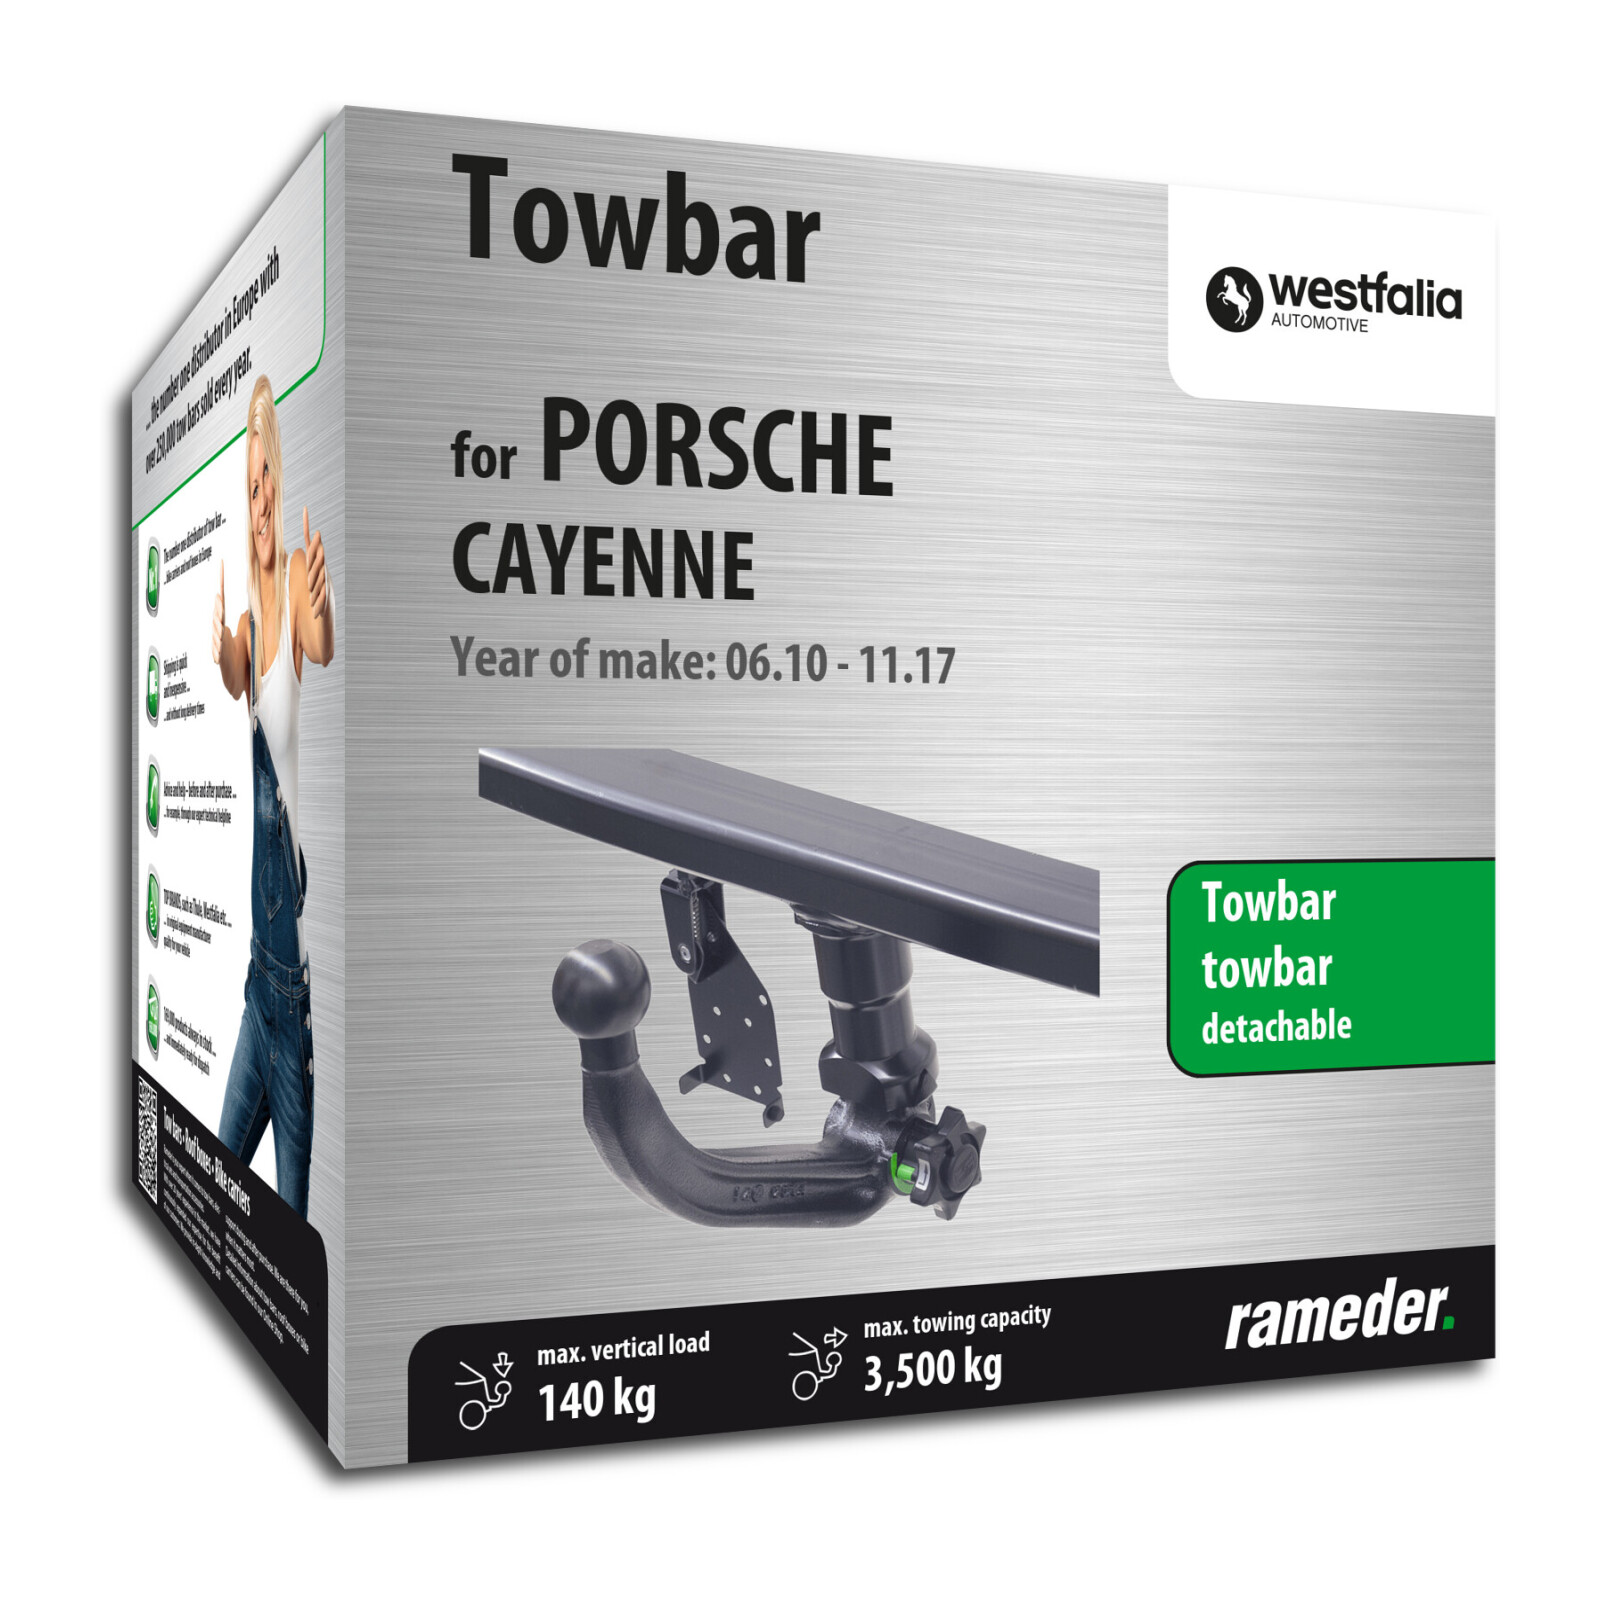 Porsche Cayenne Trailer Hitch Wiring Harness Westfalia Towbar Detachable Year Of Make 0610 Towball Inserted From Below